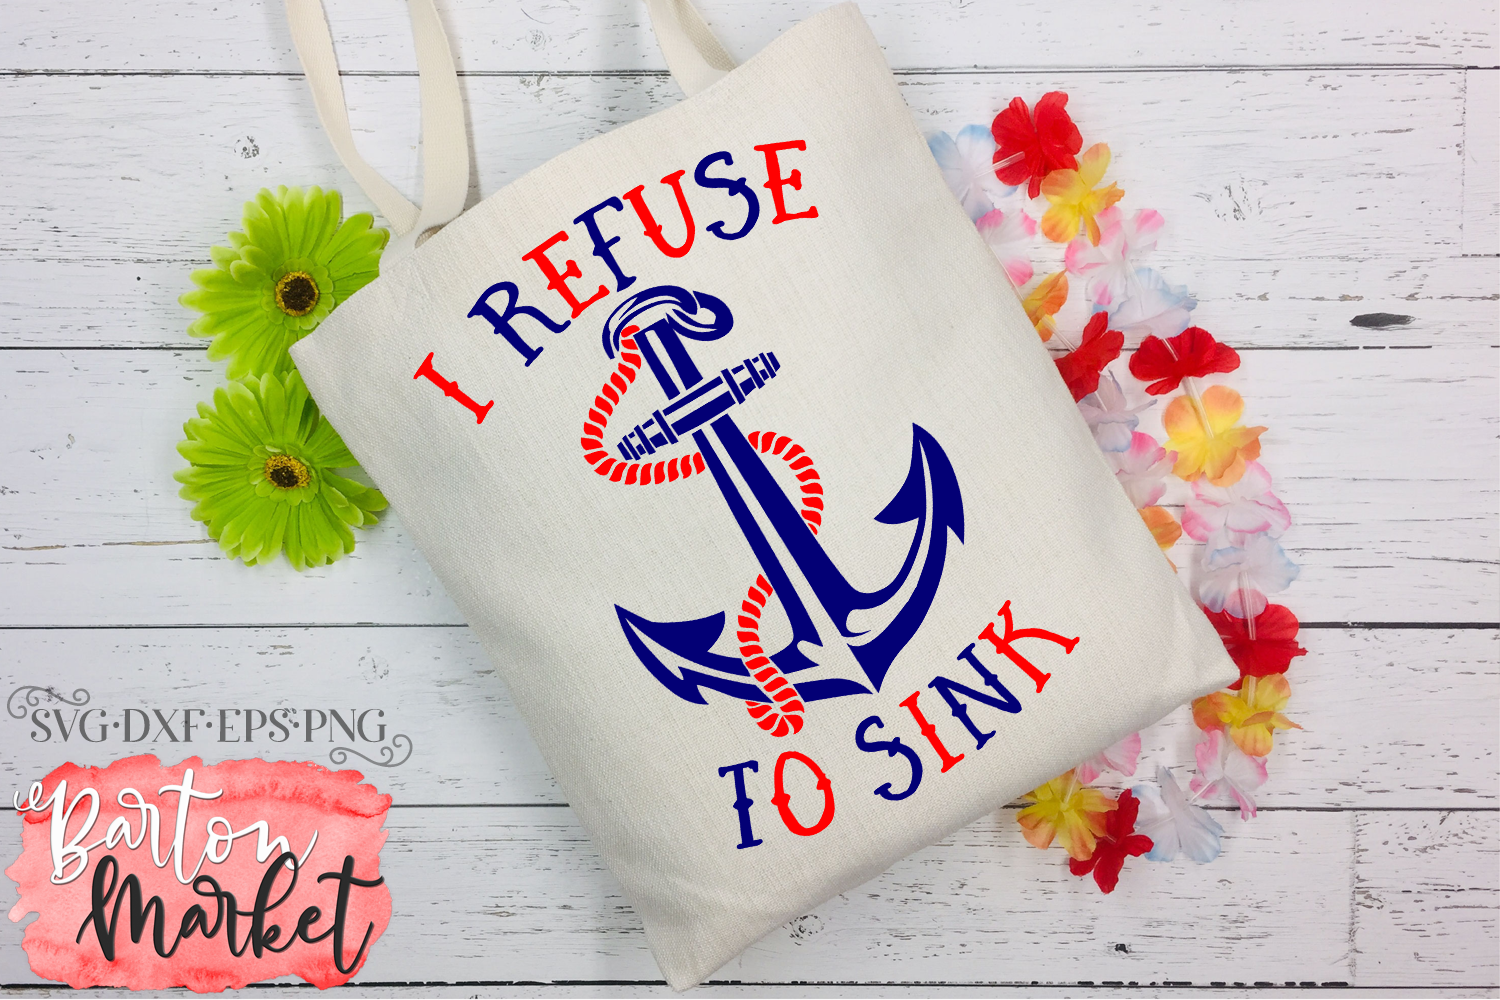 I Refuse To Sink SVG DXF EPS PNG example image 3